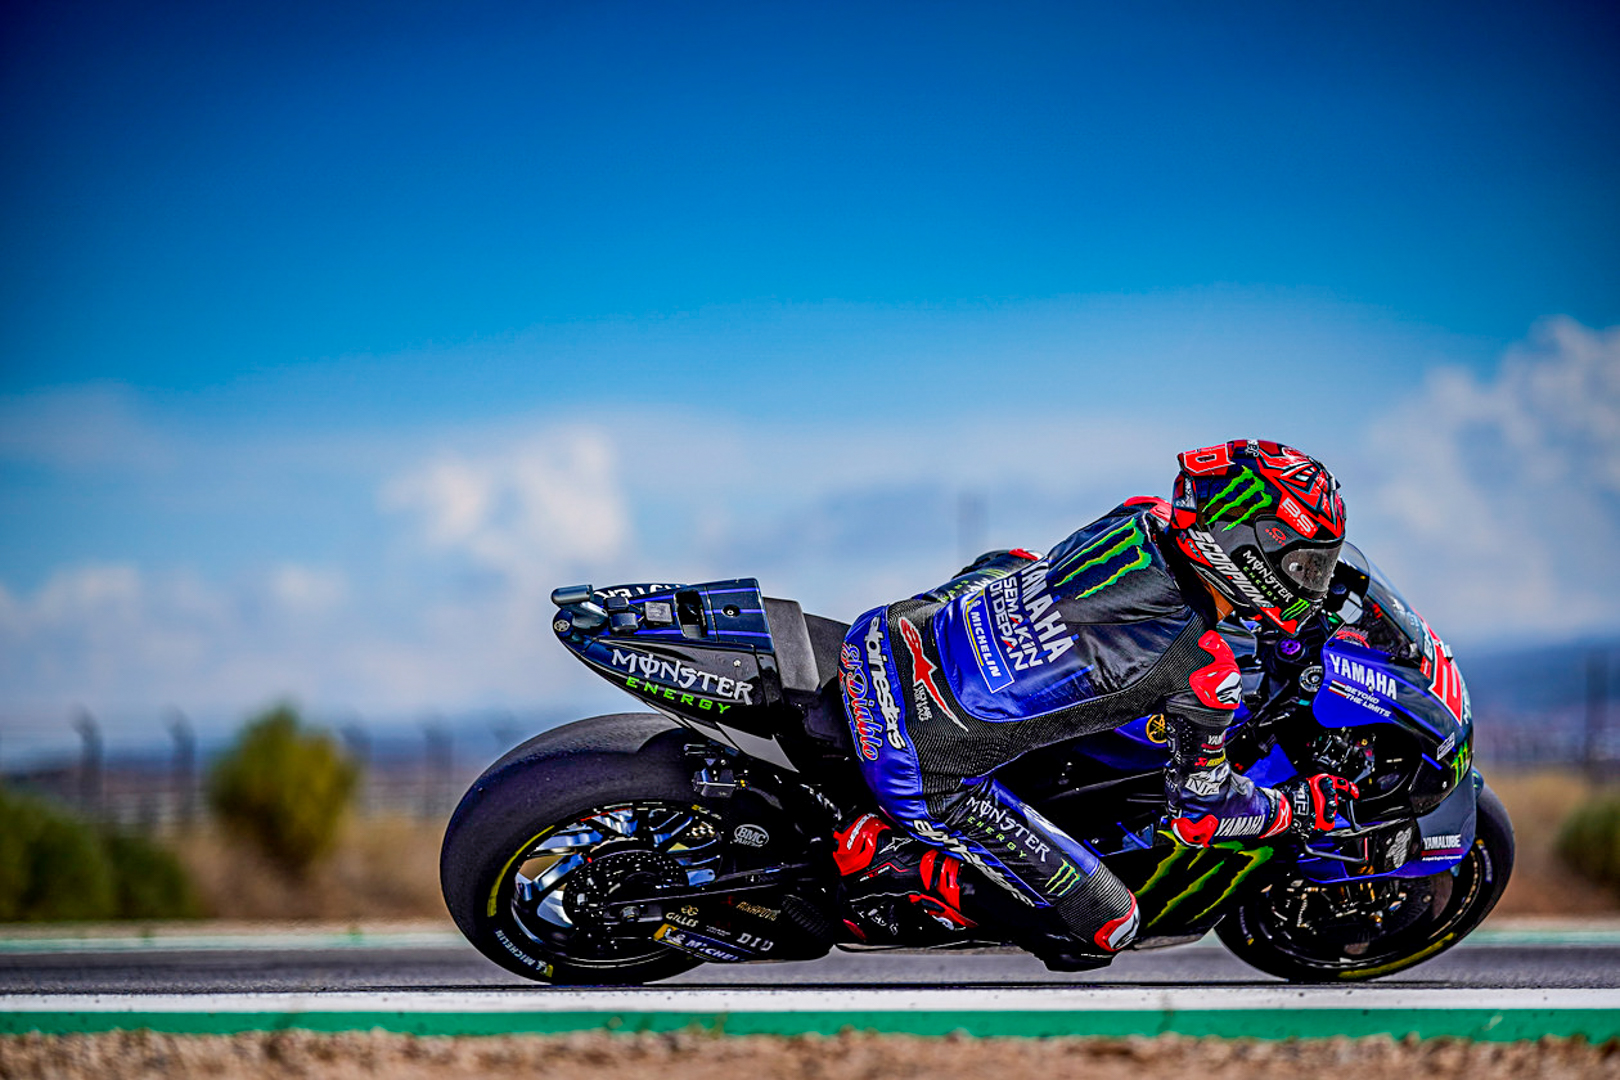 Monster Energy Yamaha MotoGP to Start Aragon Attack from P3 and P15